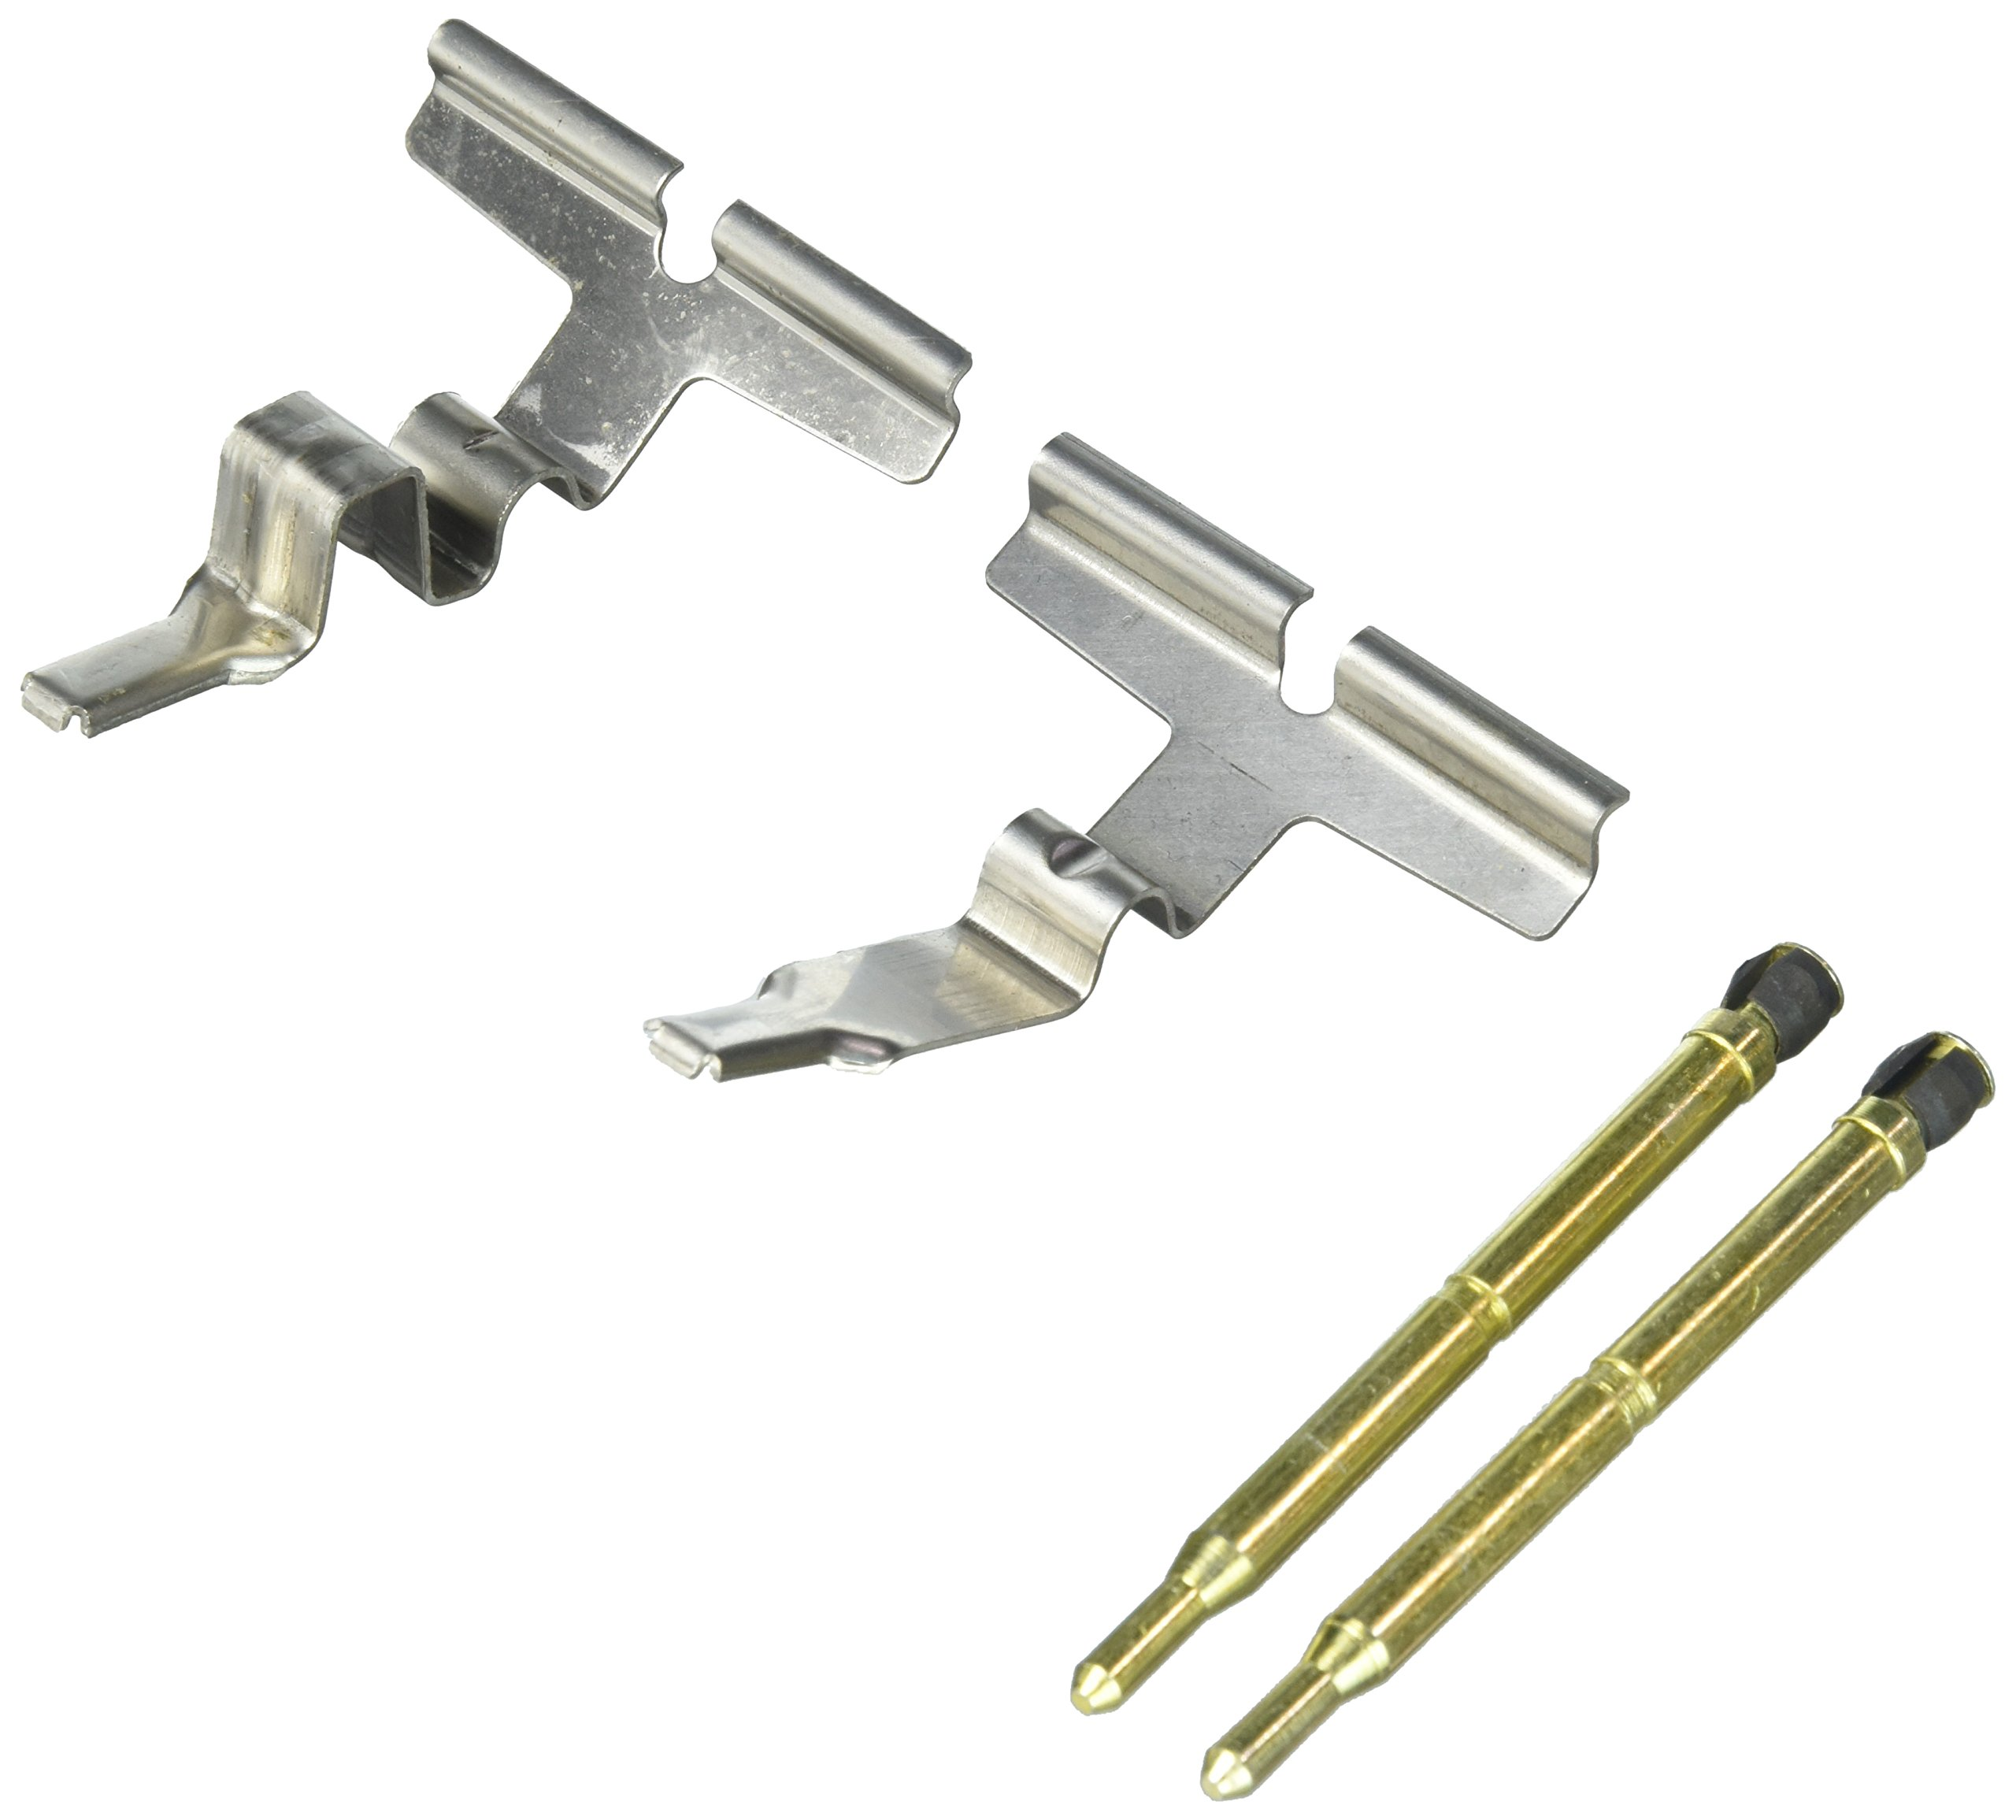 Carlson 13559 Rear Disc Brake Hardware Kit by Carlson